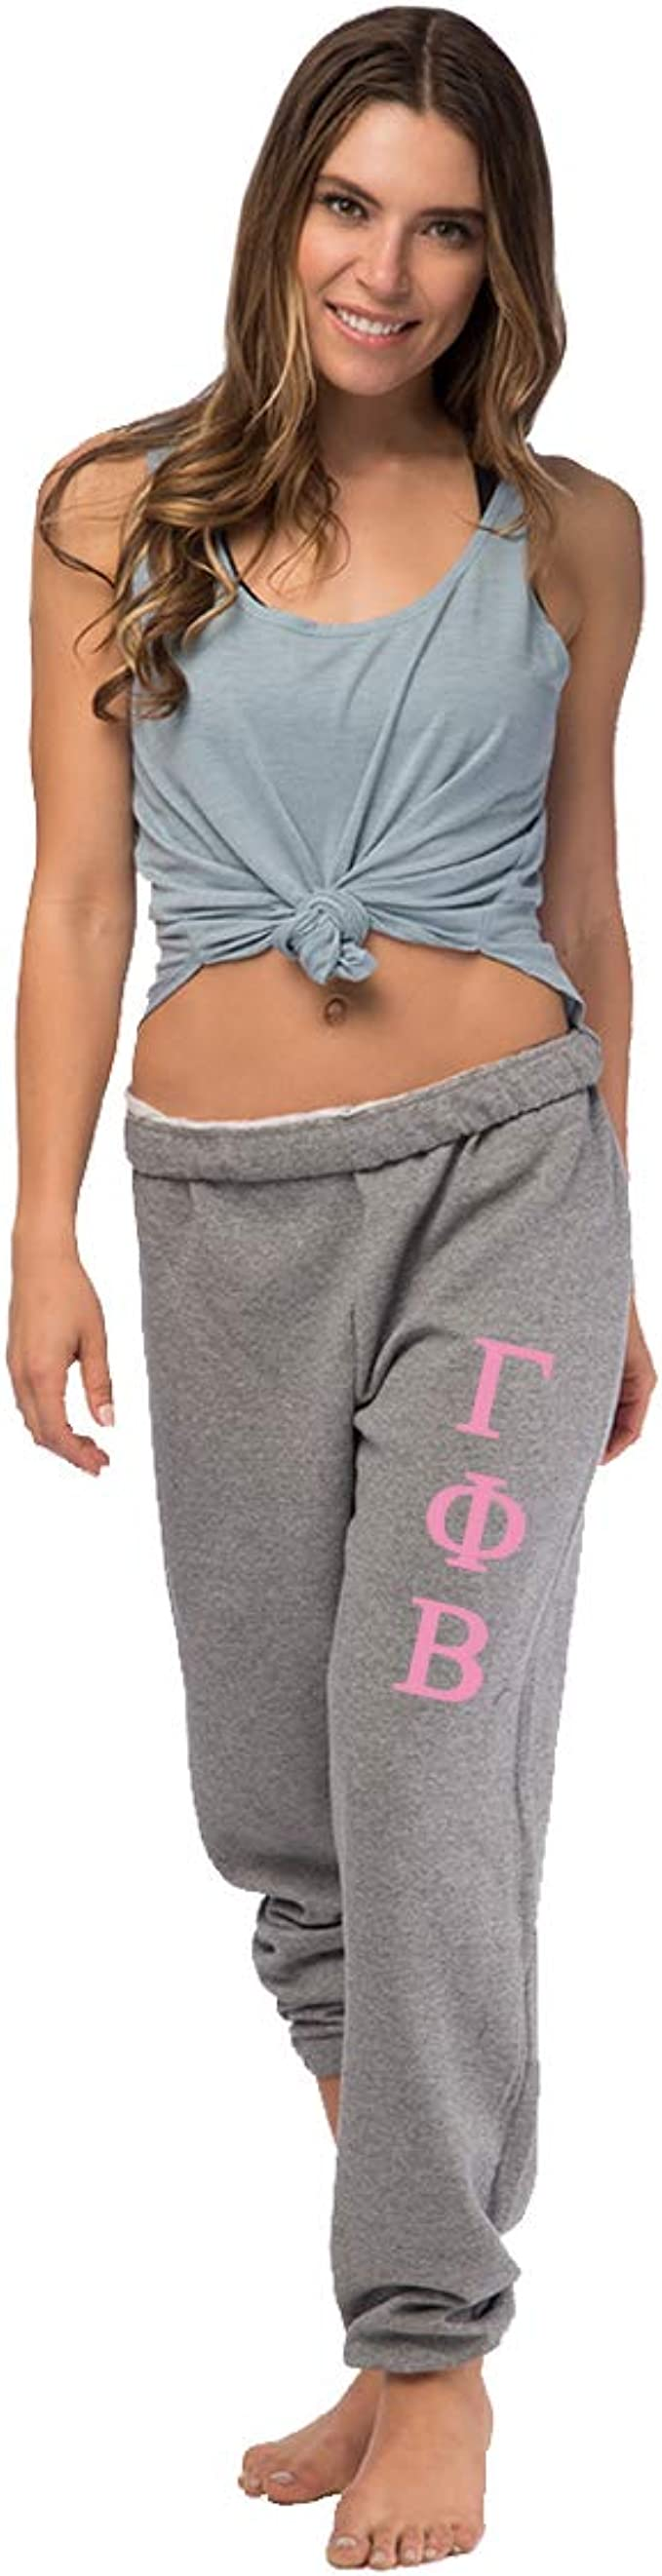 Cactus Joggers Embroidered Sweats Women